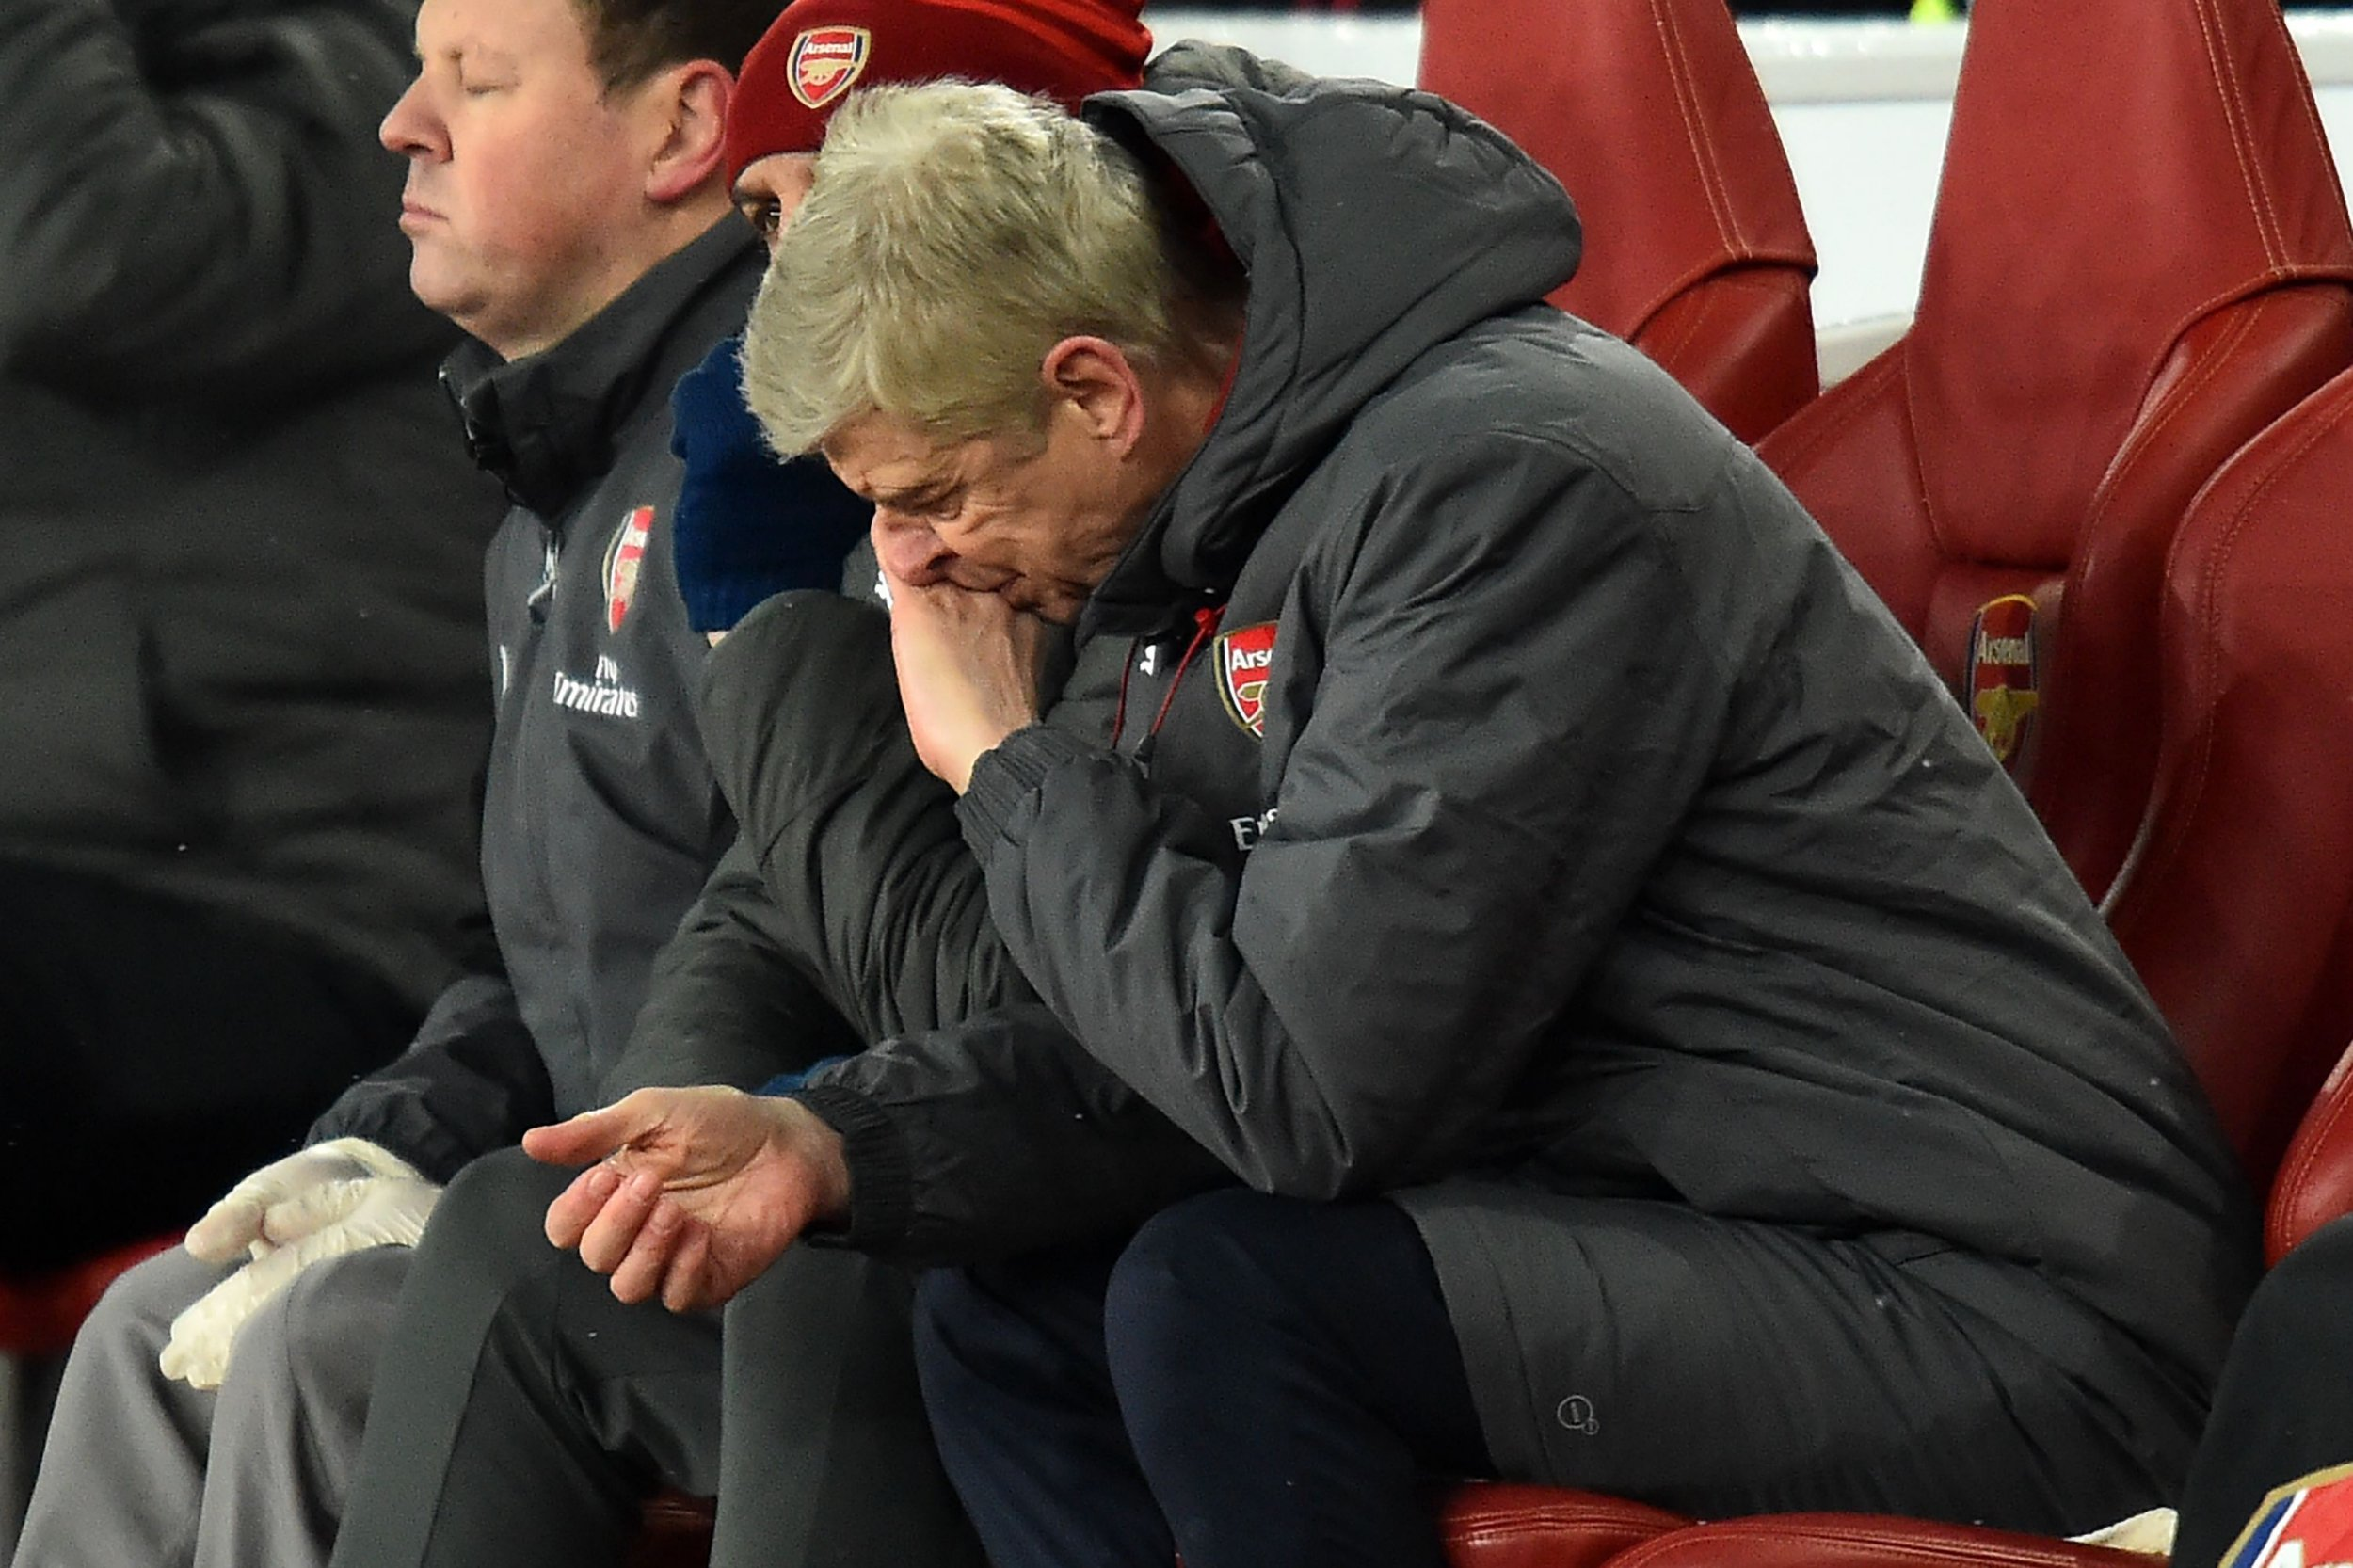 Thierry Henry and Patrick Vieira are making life harder for Arsene Wenger, claims Lee Dixon